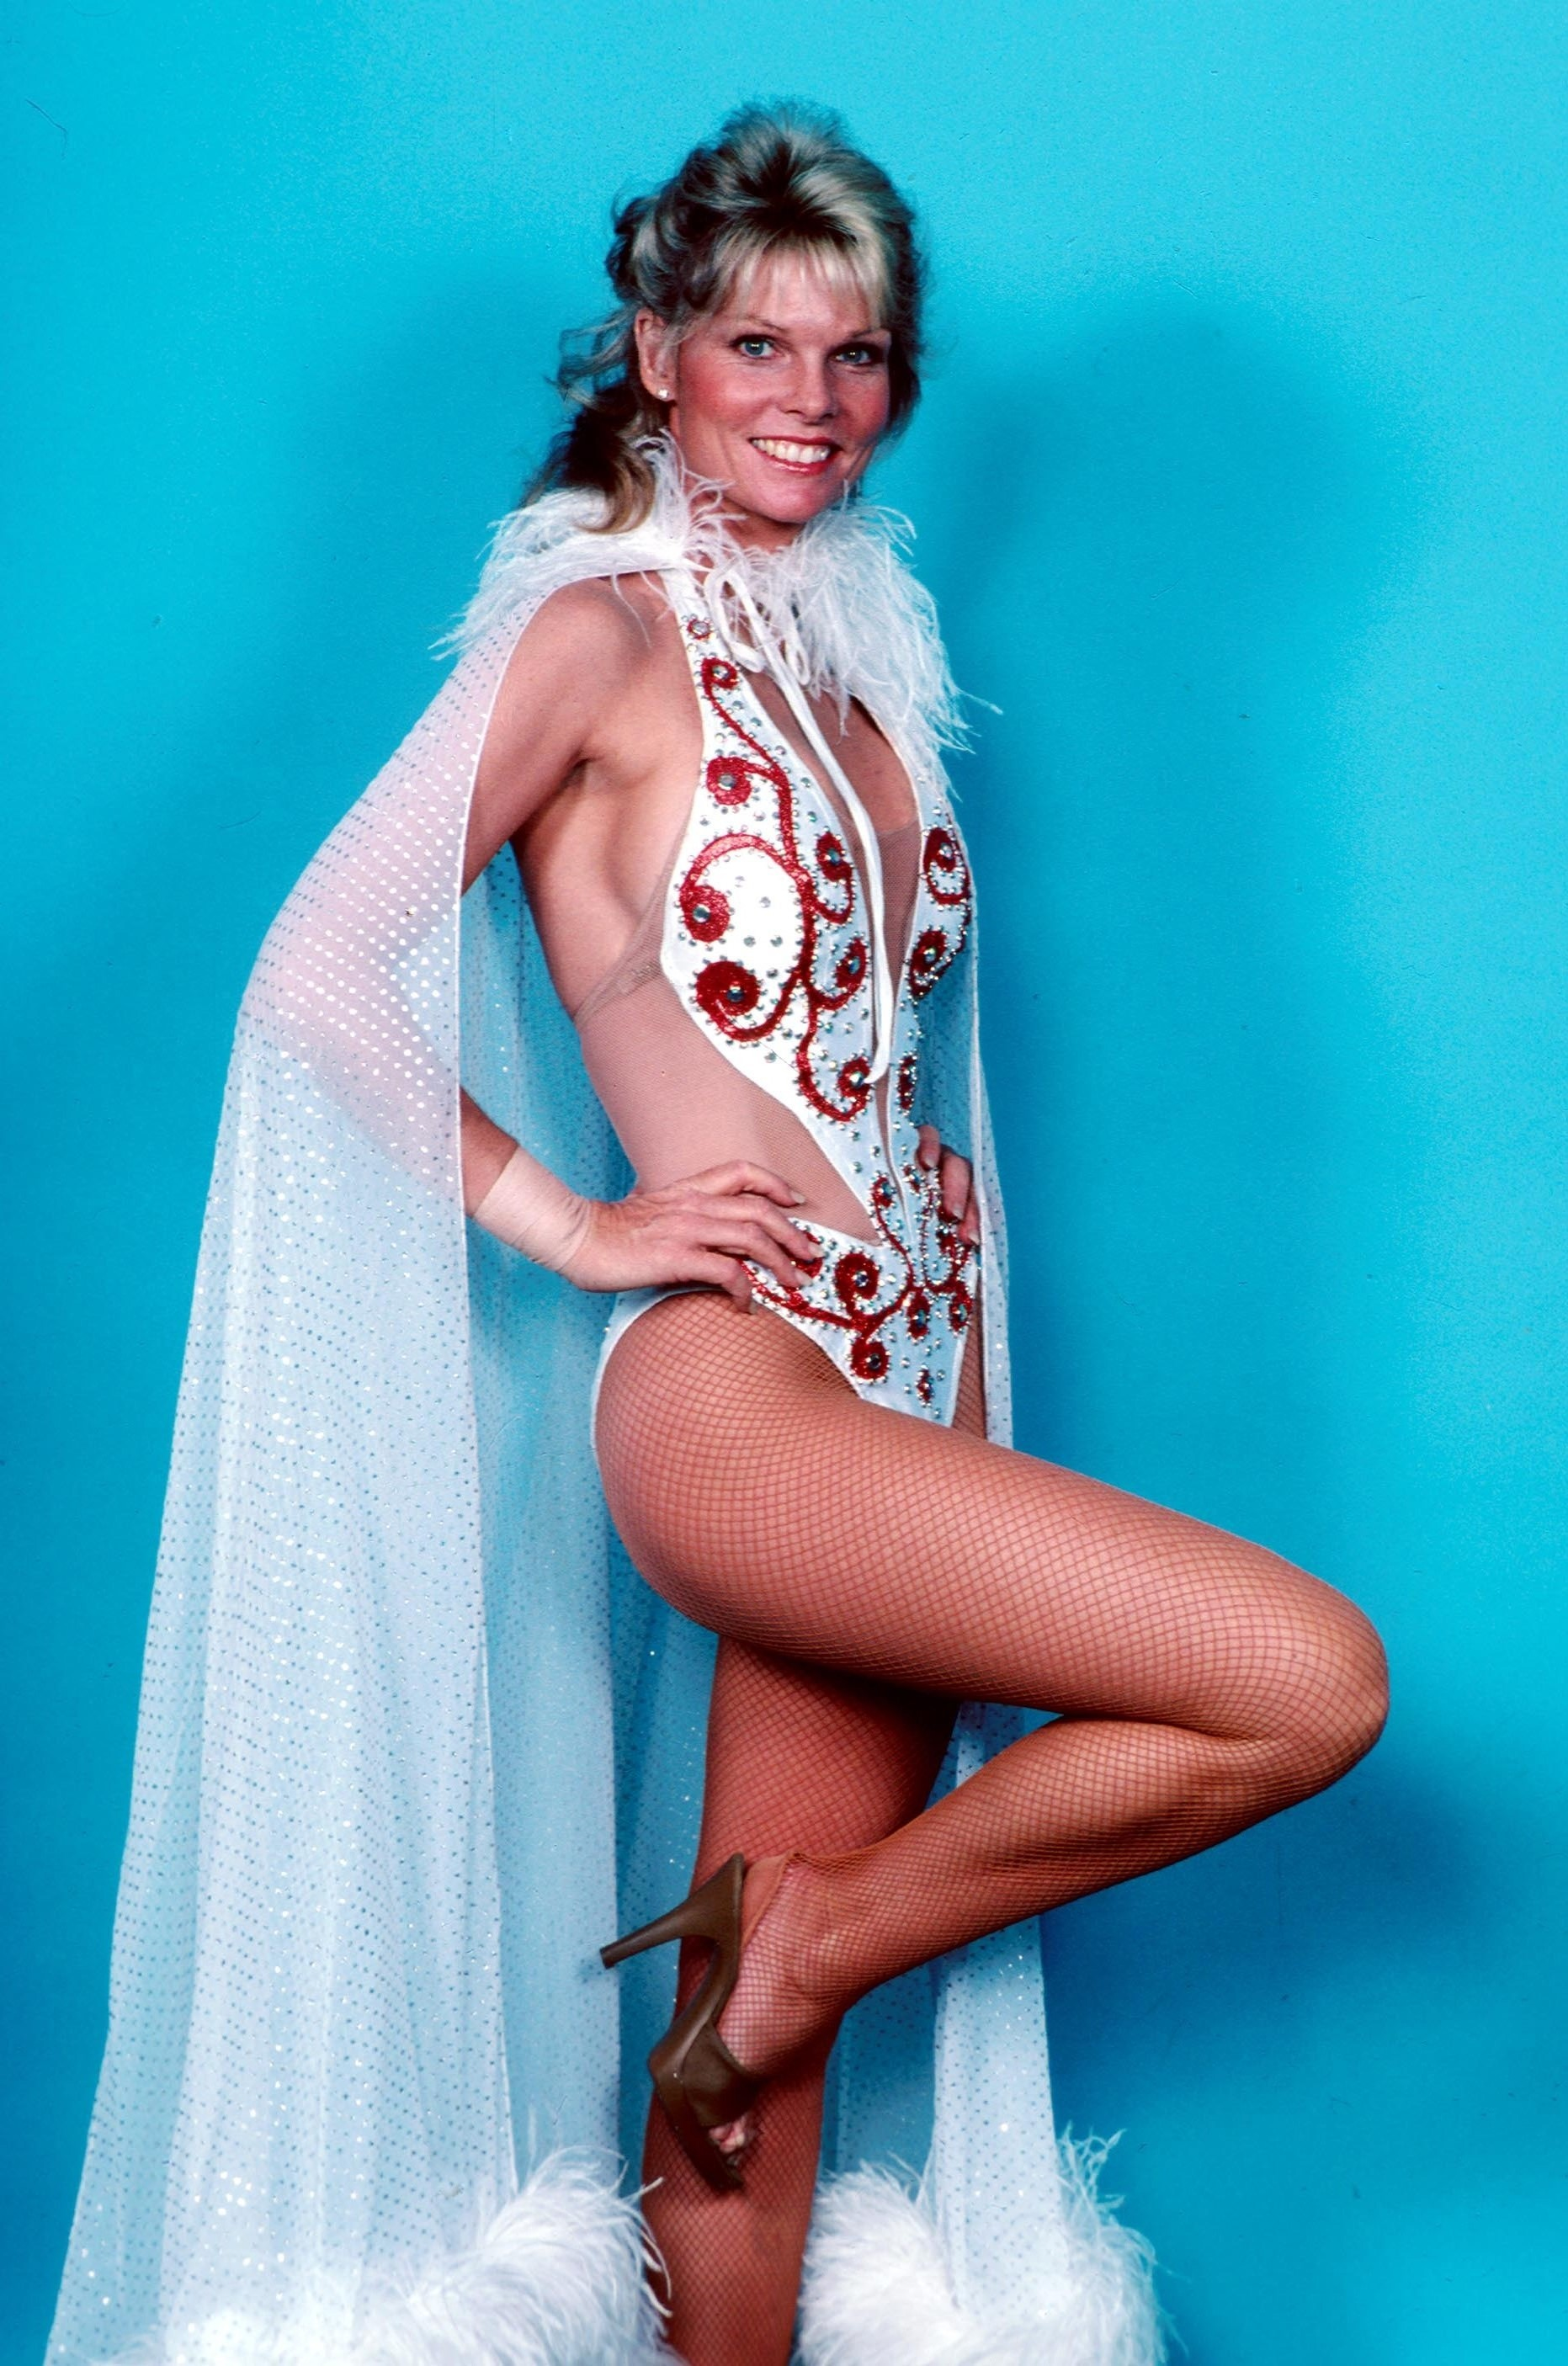 Cathy Lee Crosby naked (36 foto and video), Topless, Sideboobs, Instagram, underwear 2006